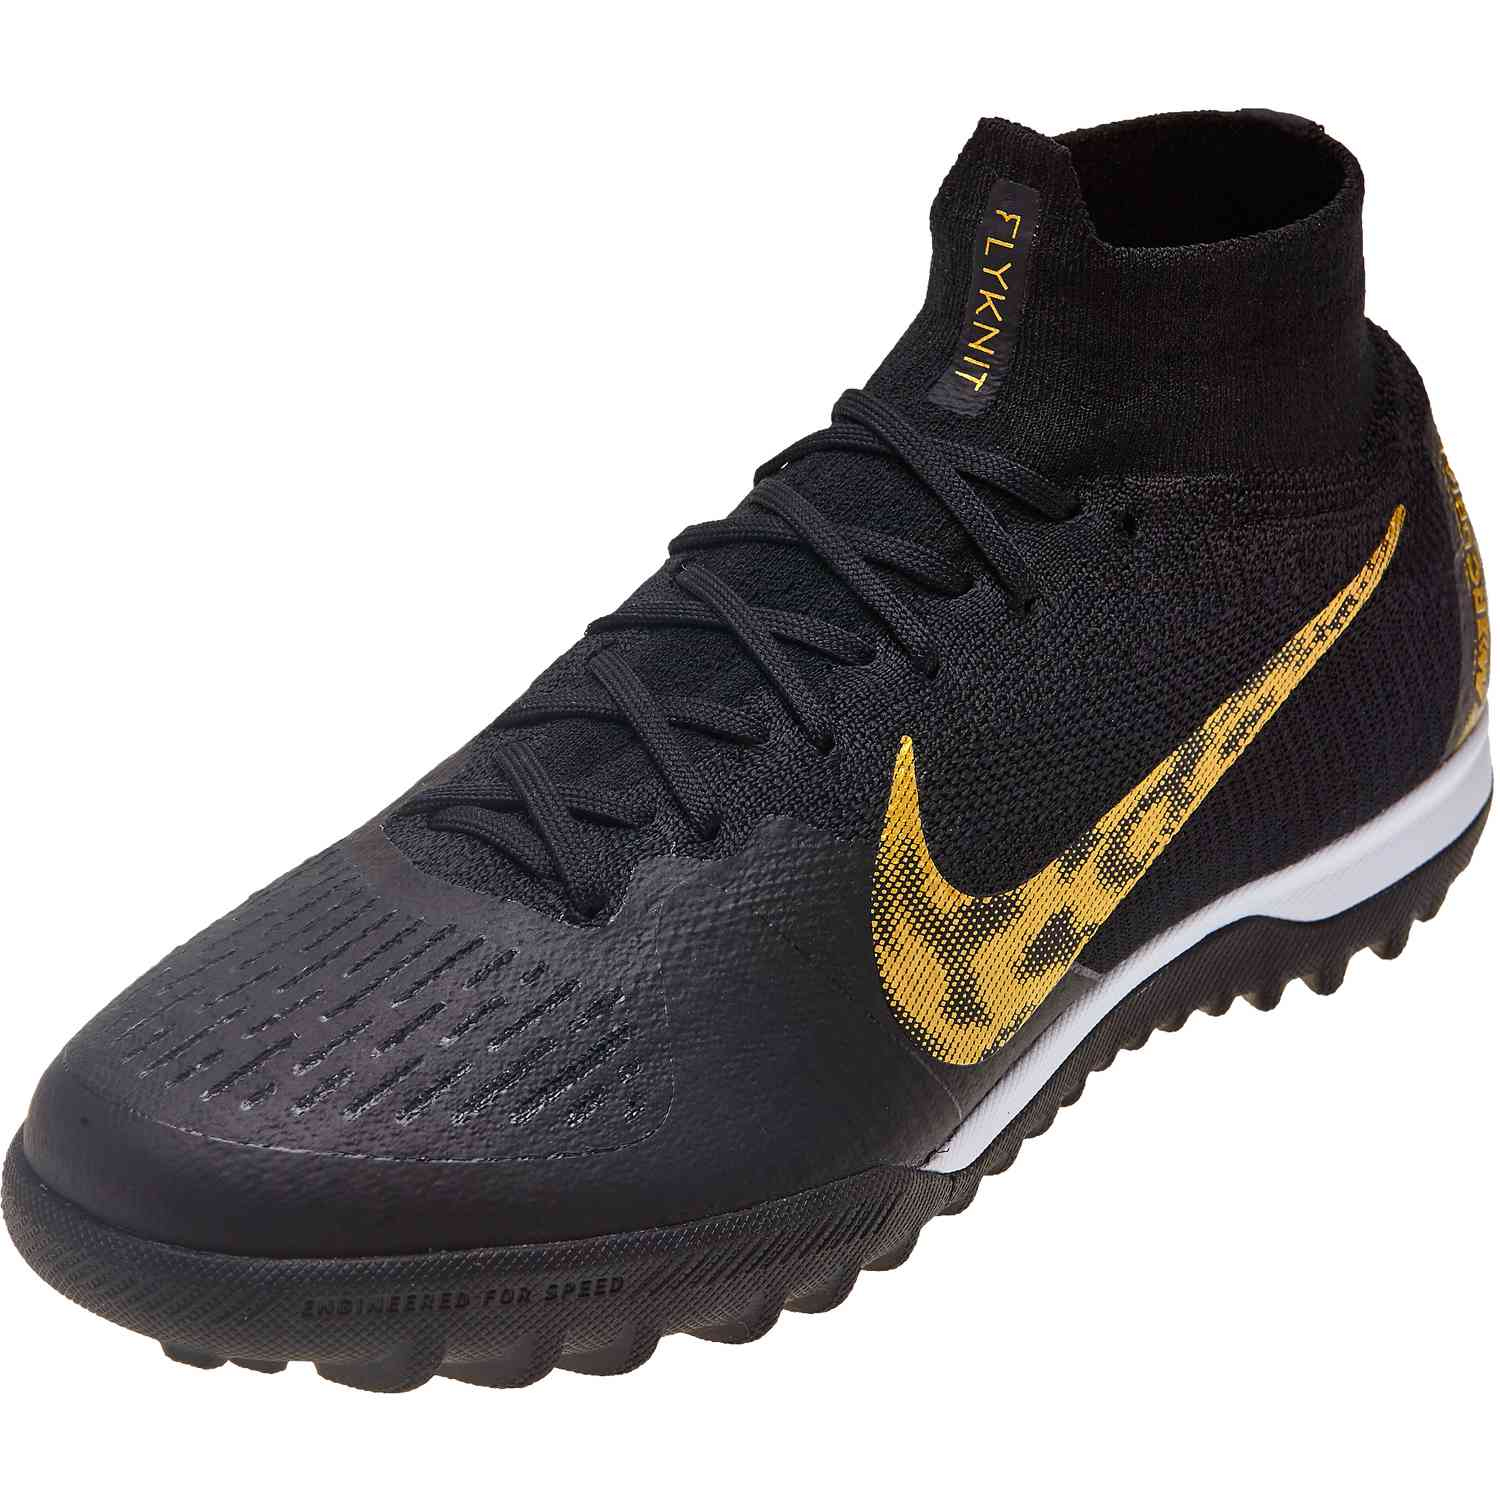 hot sale online ae18f 90877 Nike Mercurial Superfly 6 Elite TF - Black Lux - SoccerPro